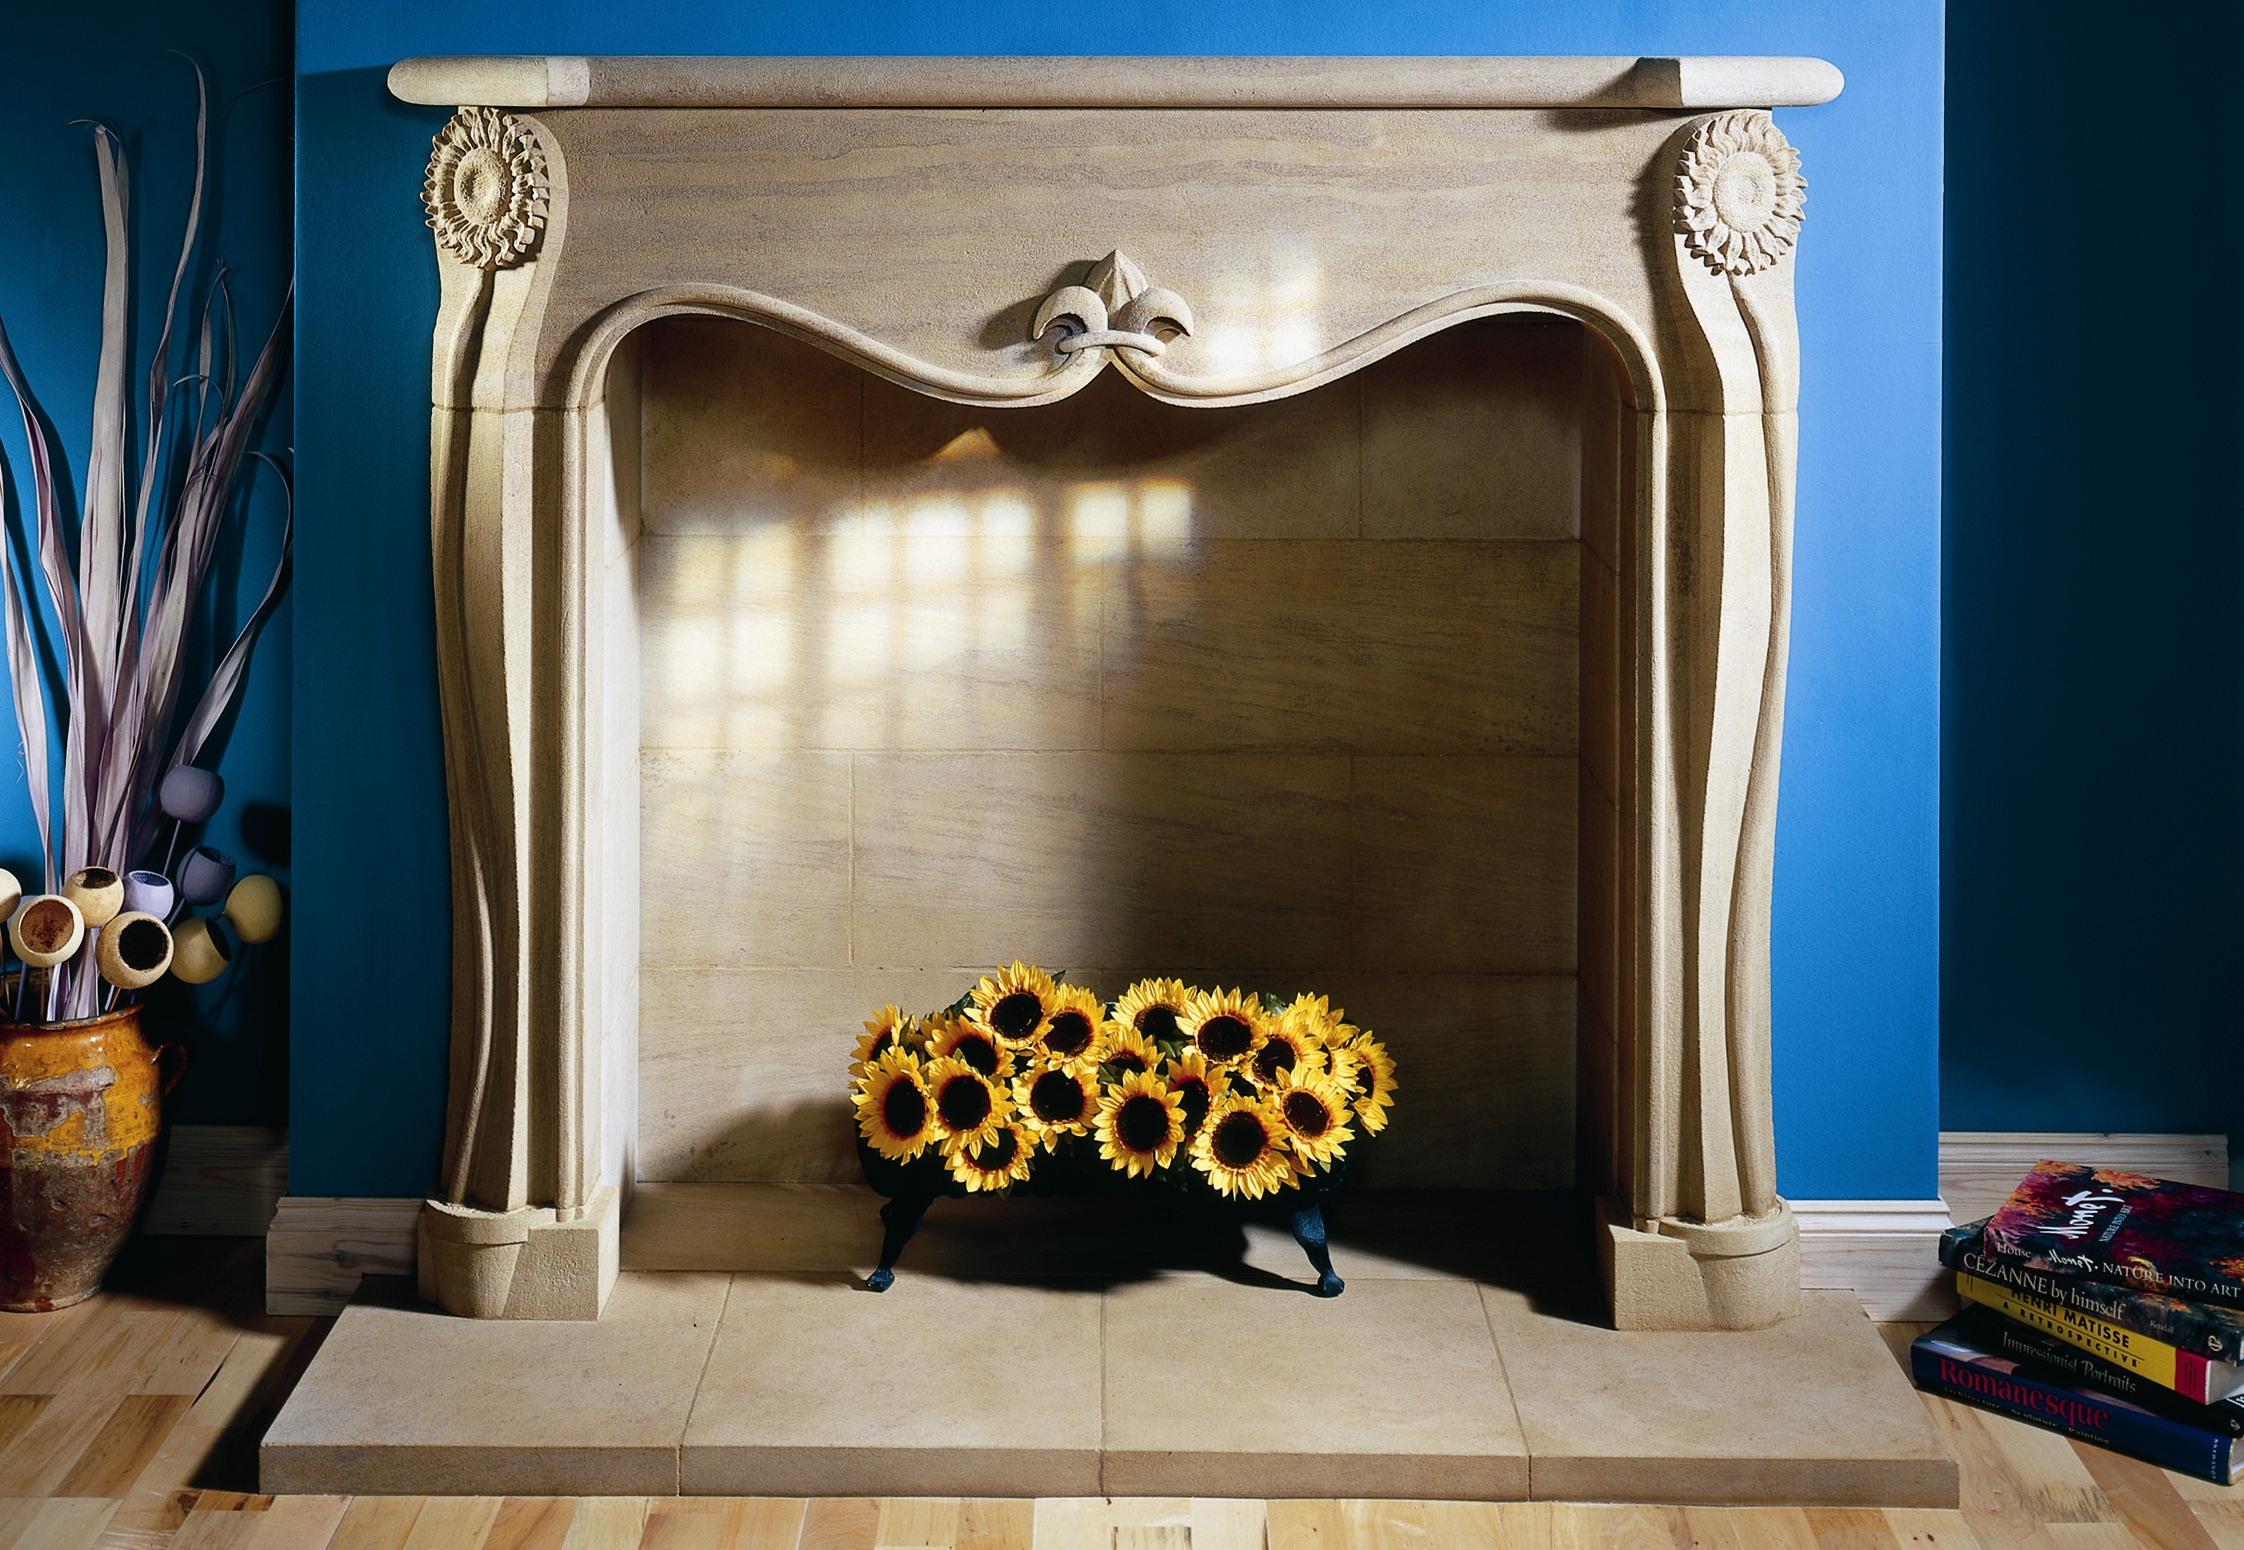 12. Ancaster Hard White stone fire surround with carved sunflower detail – Surrey